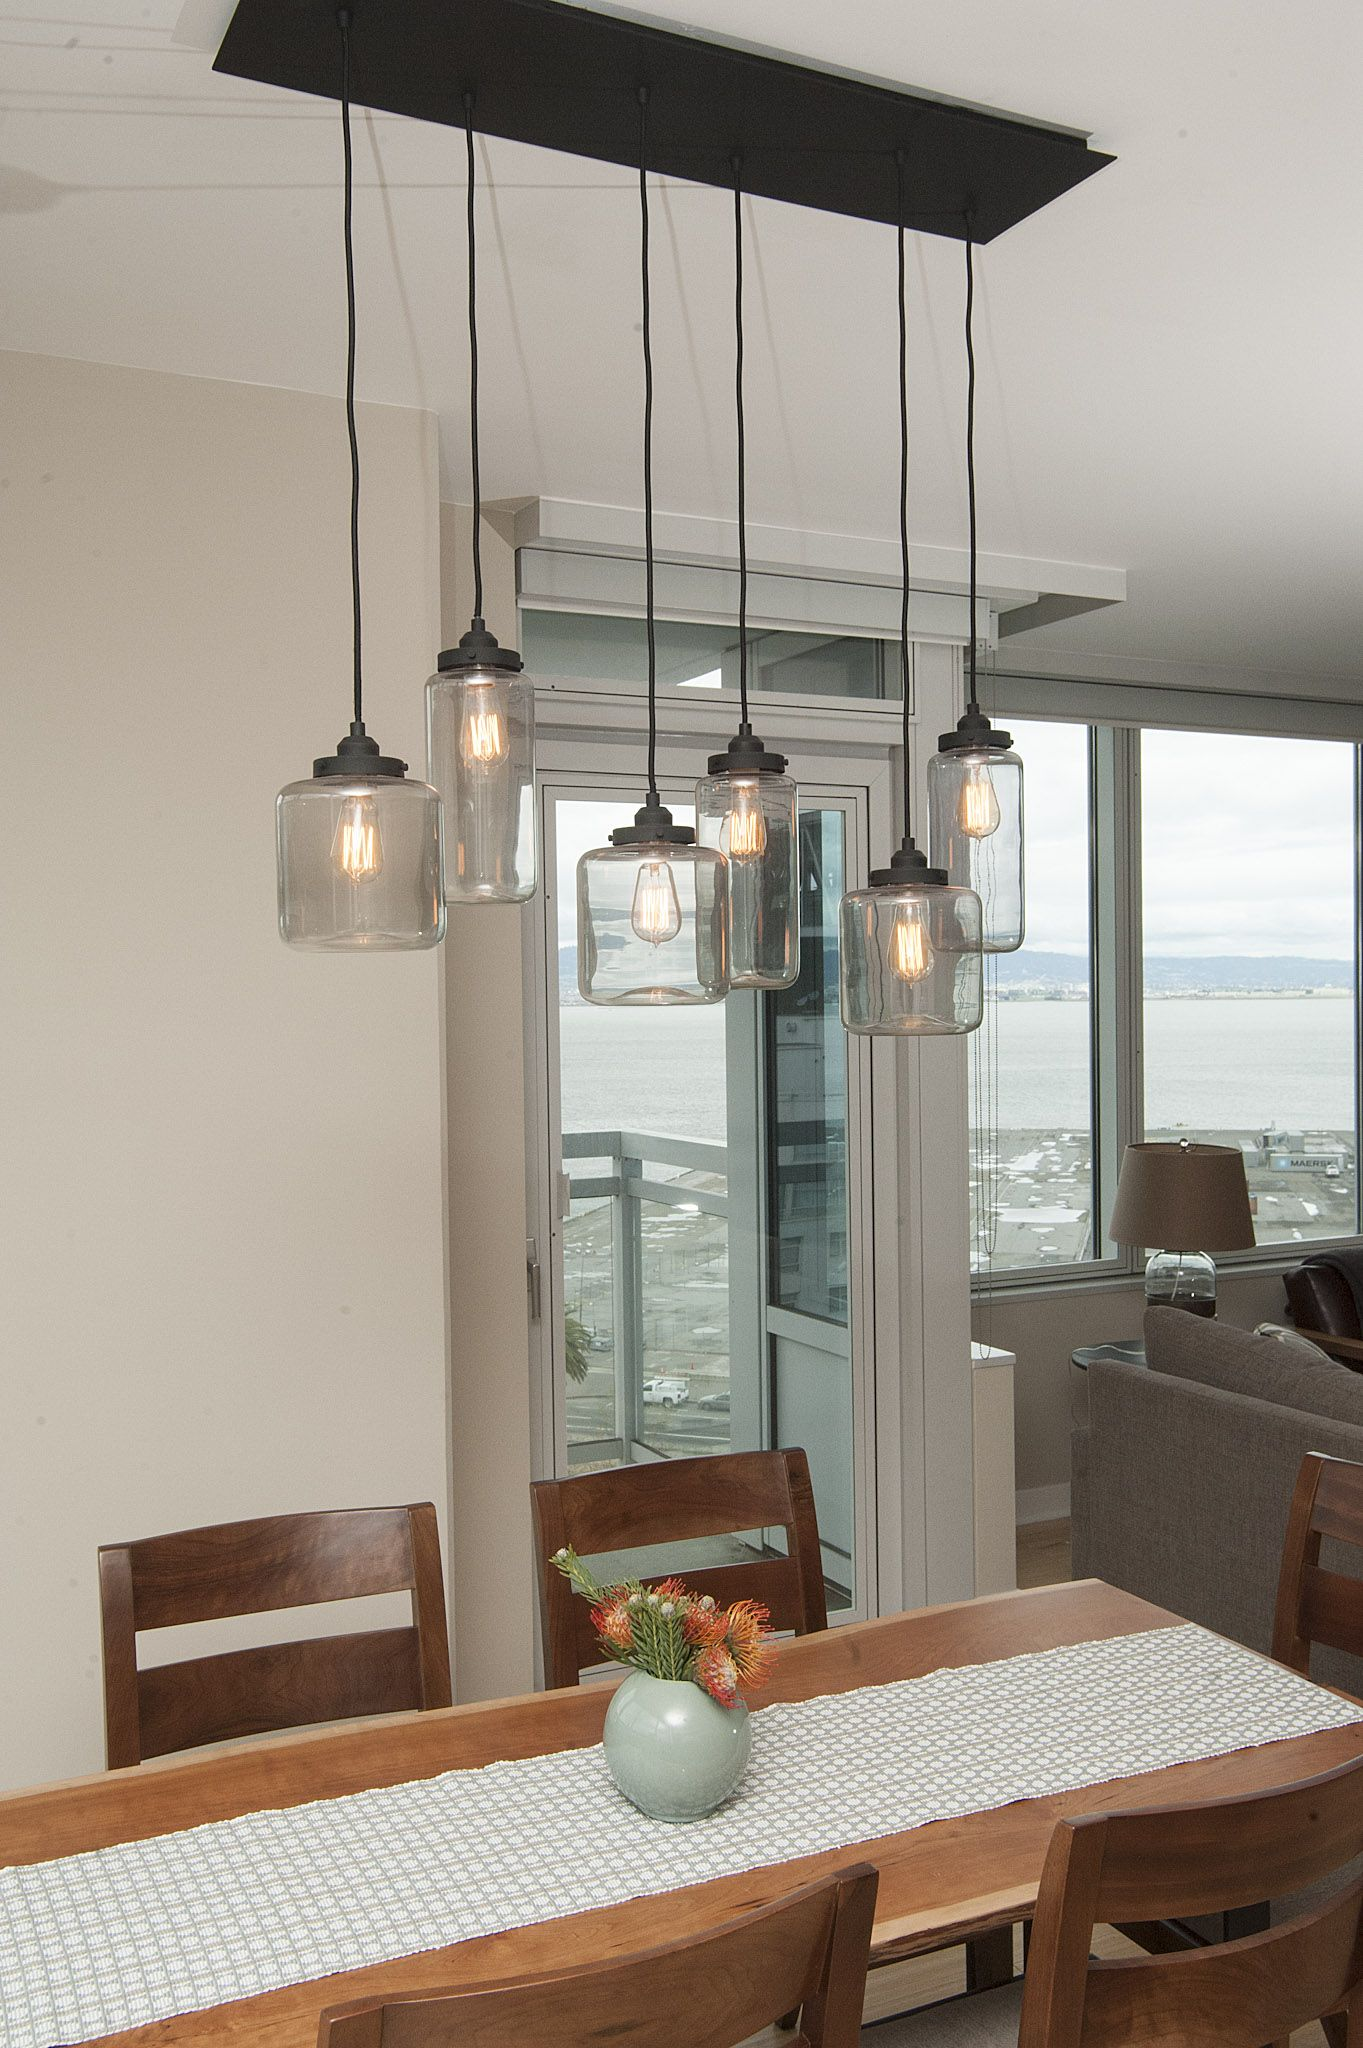 Uncategorized Kitchen Table Light Fixtures mason jar light fixture jill cordner interior design dt kitchen design